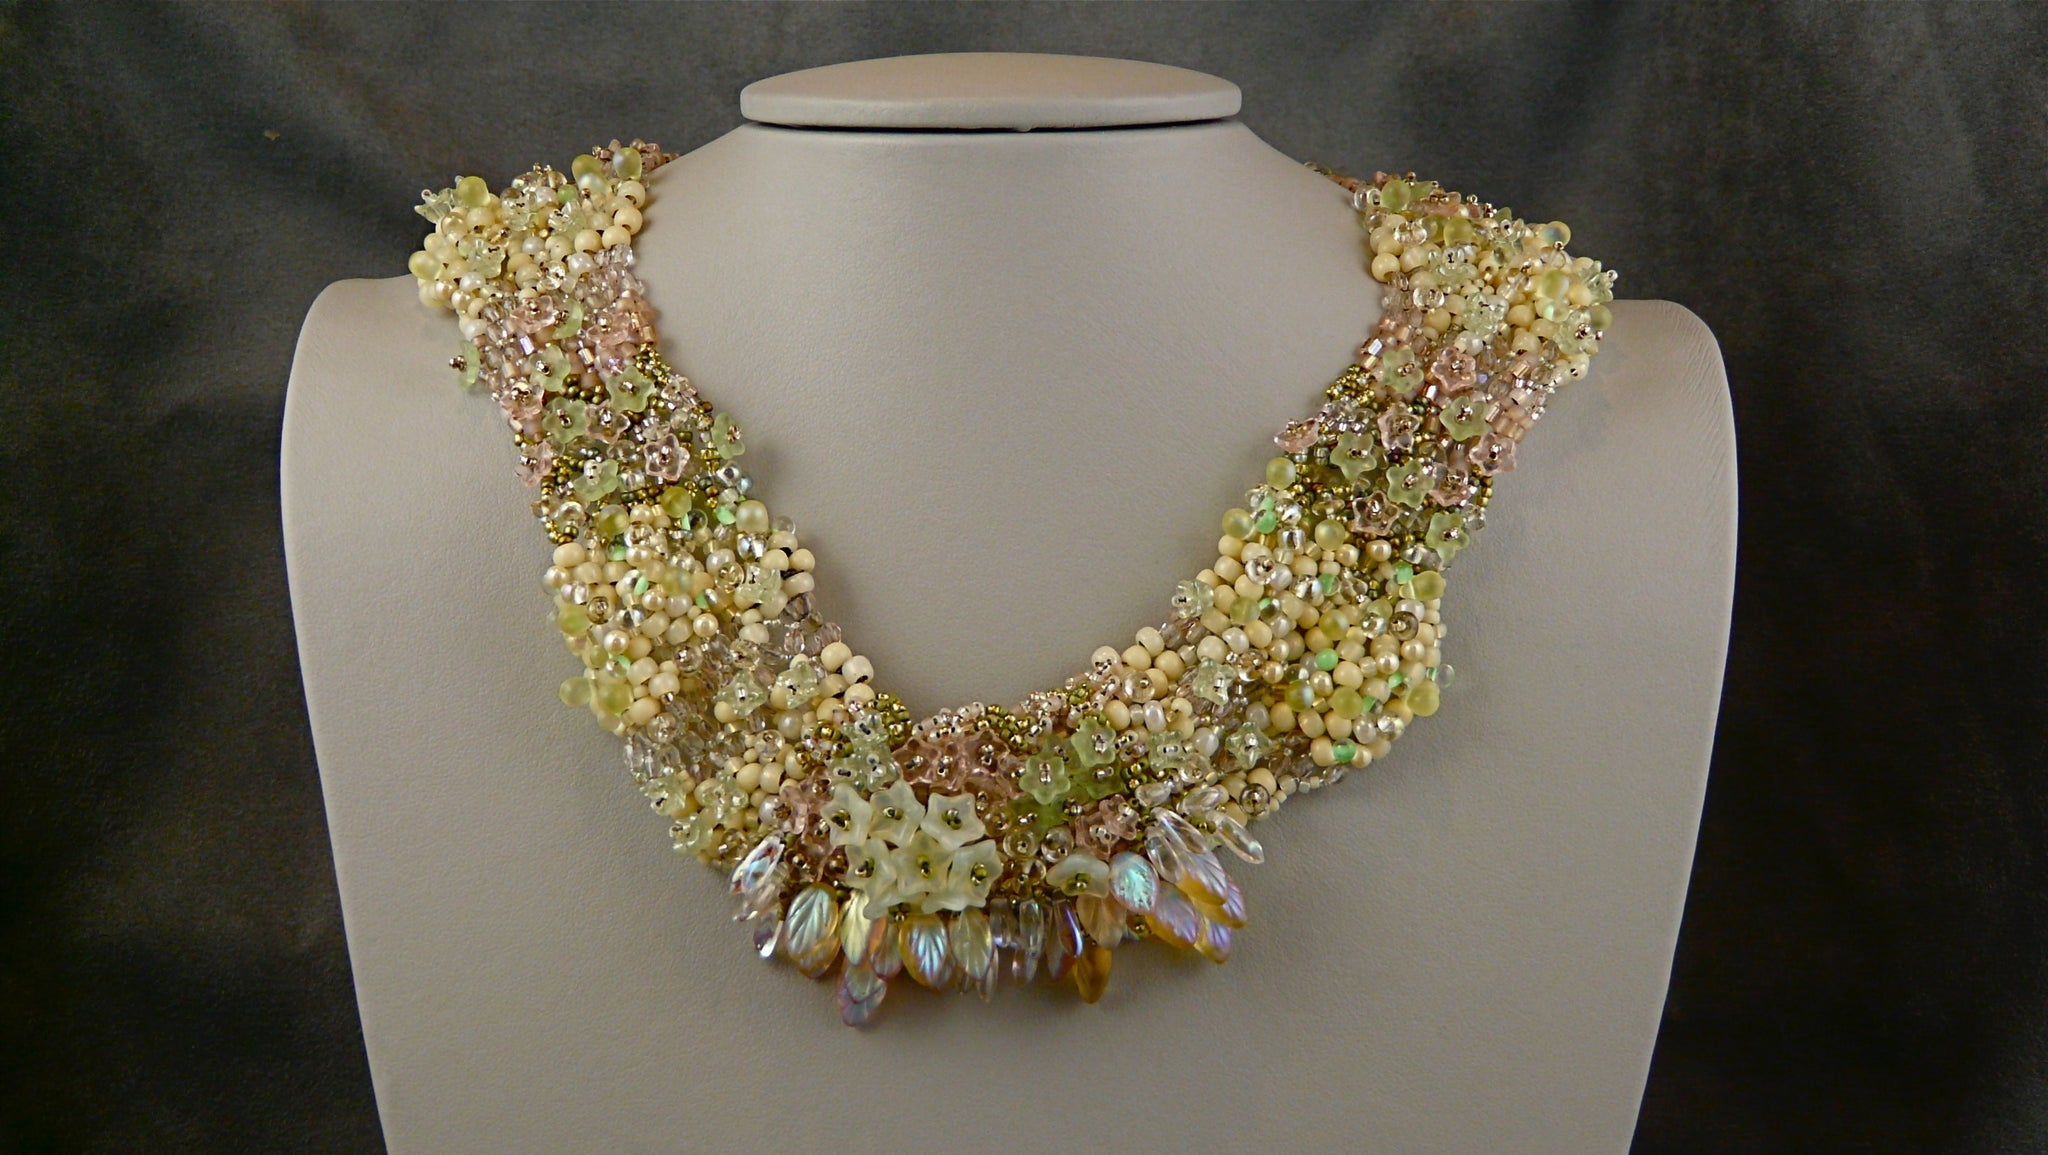 Visions of Spring Necklace